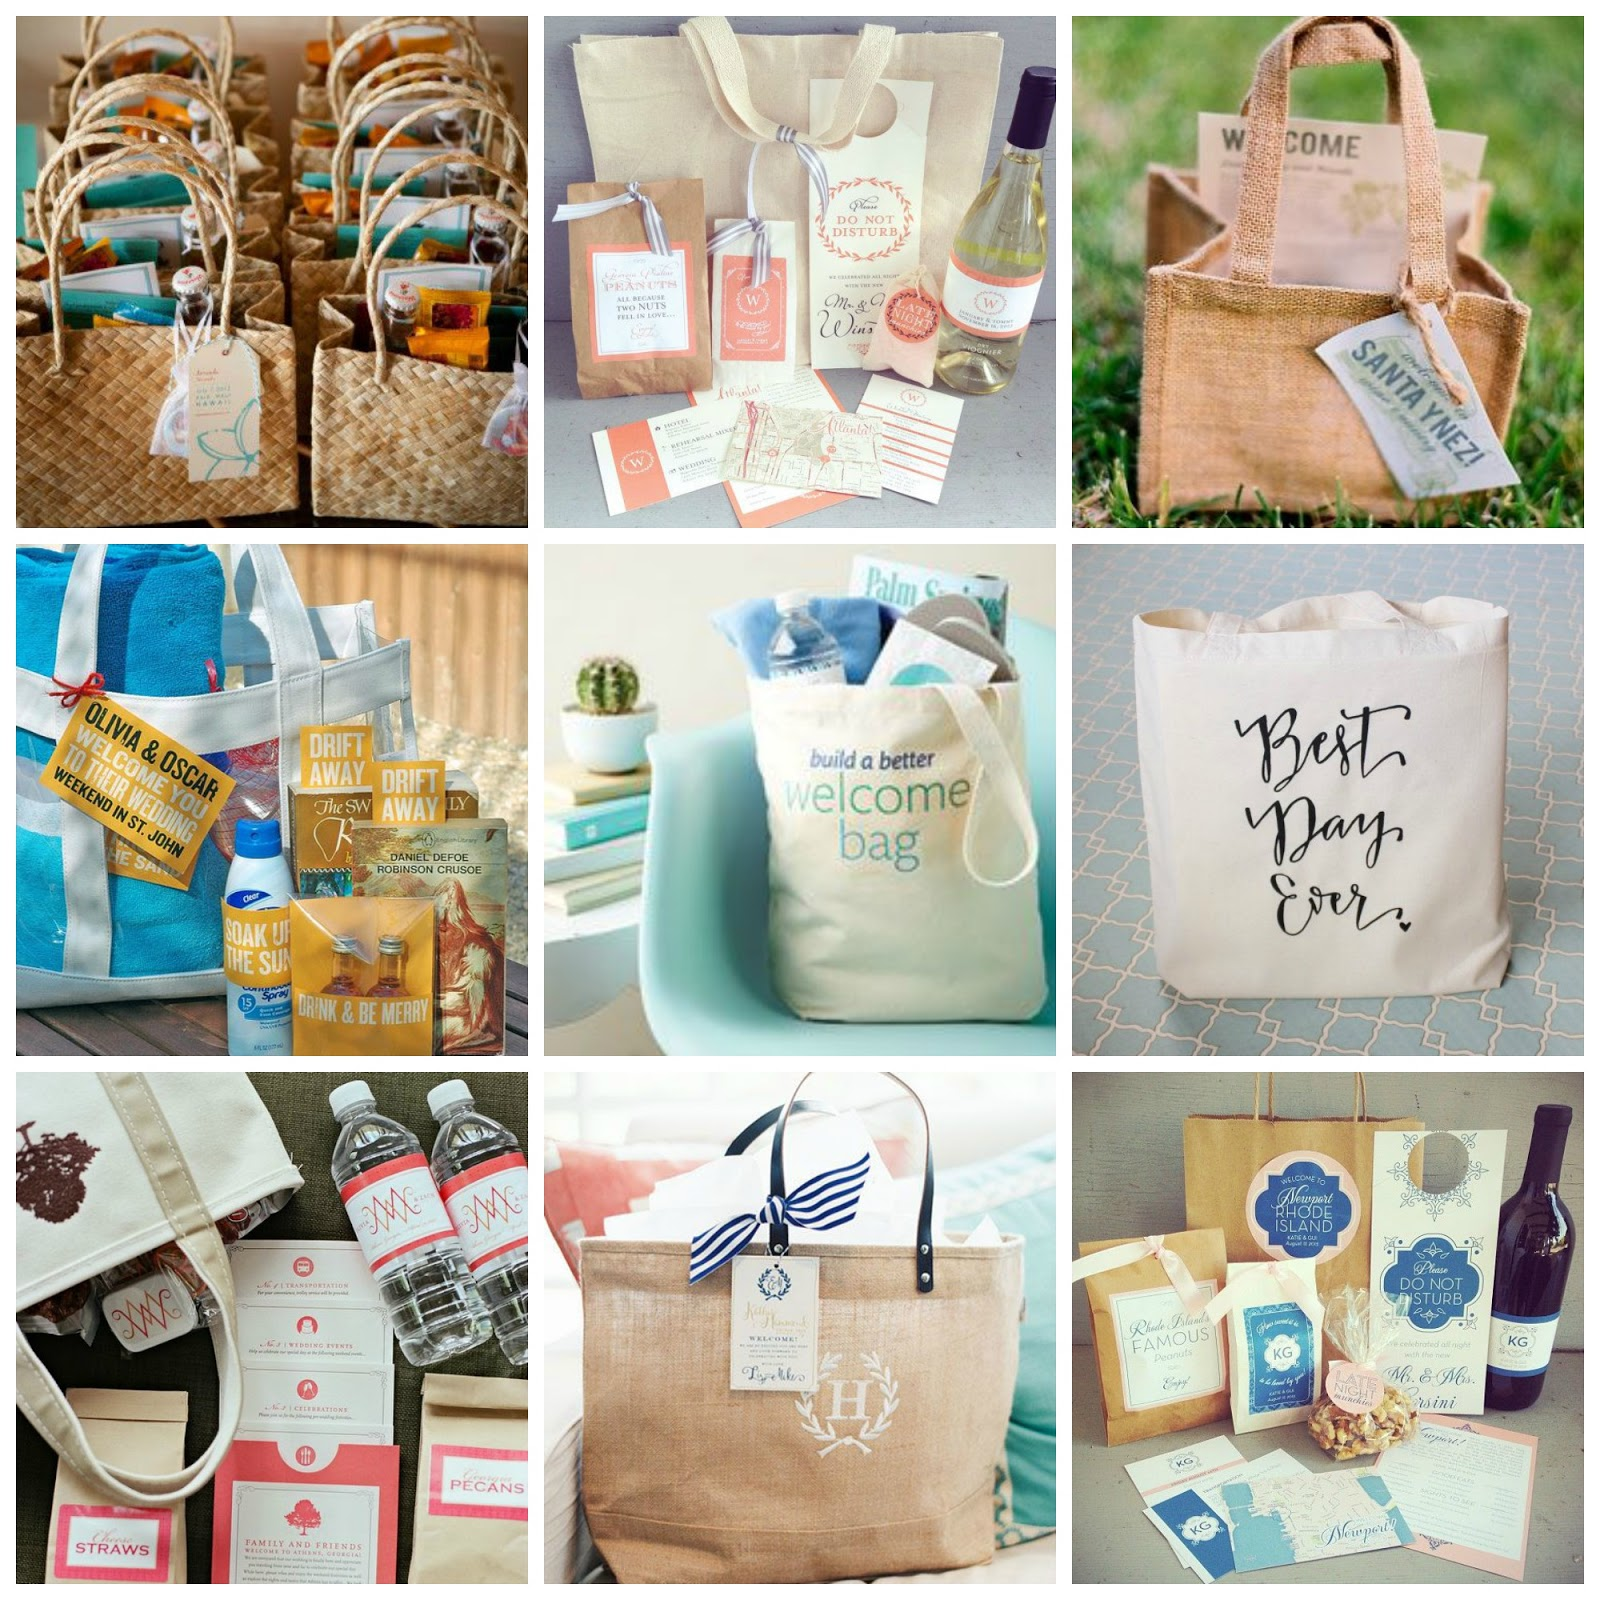 Blog mi boda keke bolsas para regalos y decoraci n de bodas for Regalo para amigas especiales boda